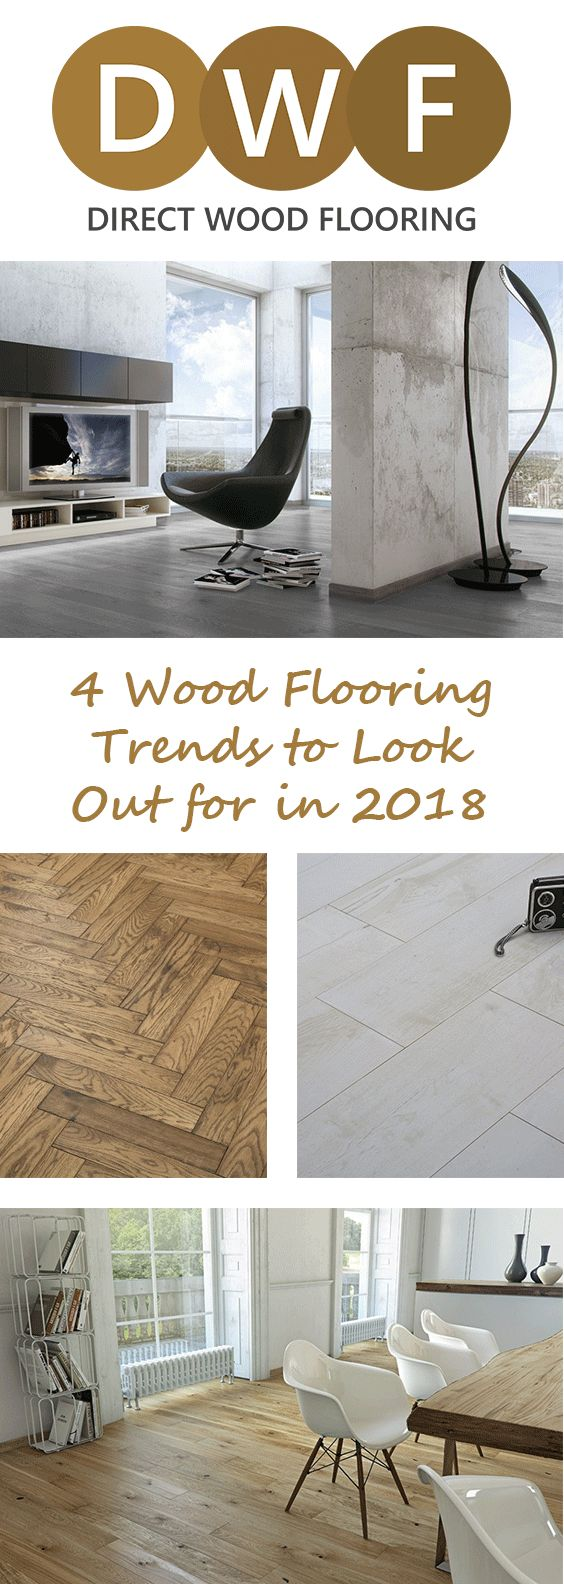 Not sure which wood flooring you should be choosing for your home or work space? Don't worry, we've got you covered with 4 Wood Flooring Trends to Look Out for in 2018. Bright ideas from Direct Wood Flooring  Check them out on our blog: https://www.directwoodflooring.co.uk/…/wood-flooring-trends/    #DirectWoodFlooring #Parquet #SolidWoodFlooring #EngineeredWoodFlooring #Laminate #LVT #StoreOpening #Newport #NewportNews #BusinessNews #BusinessDaily